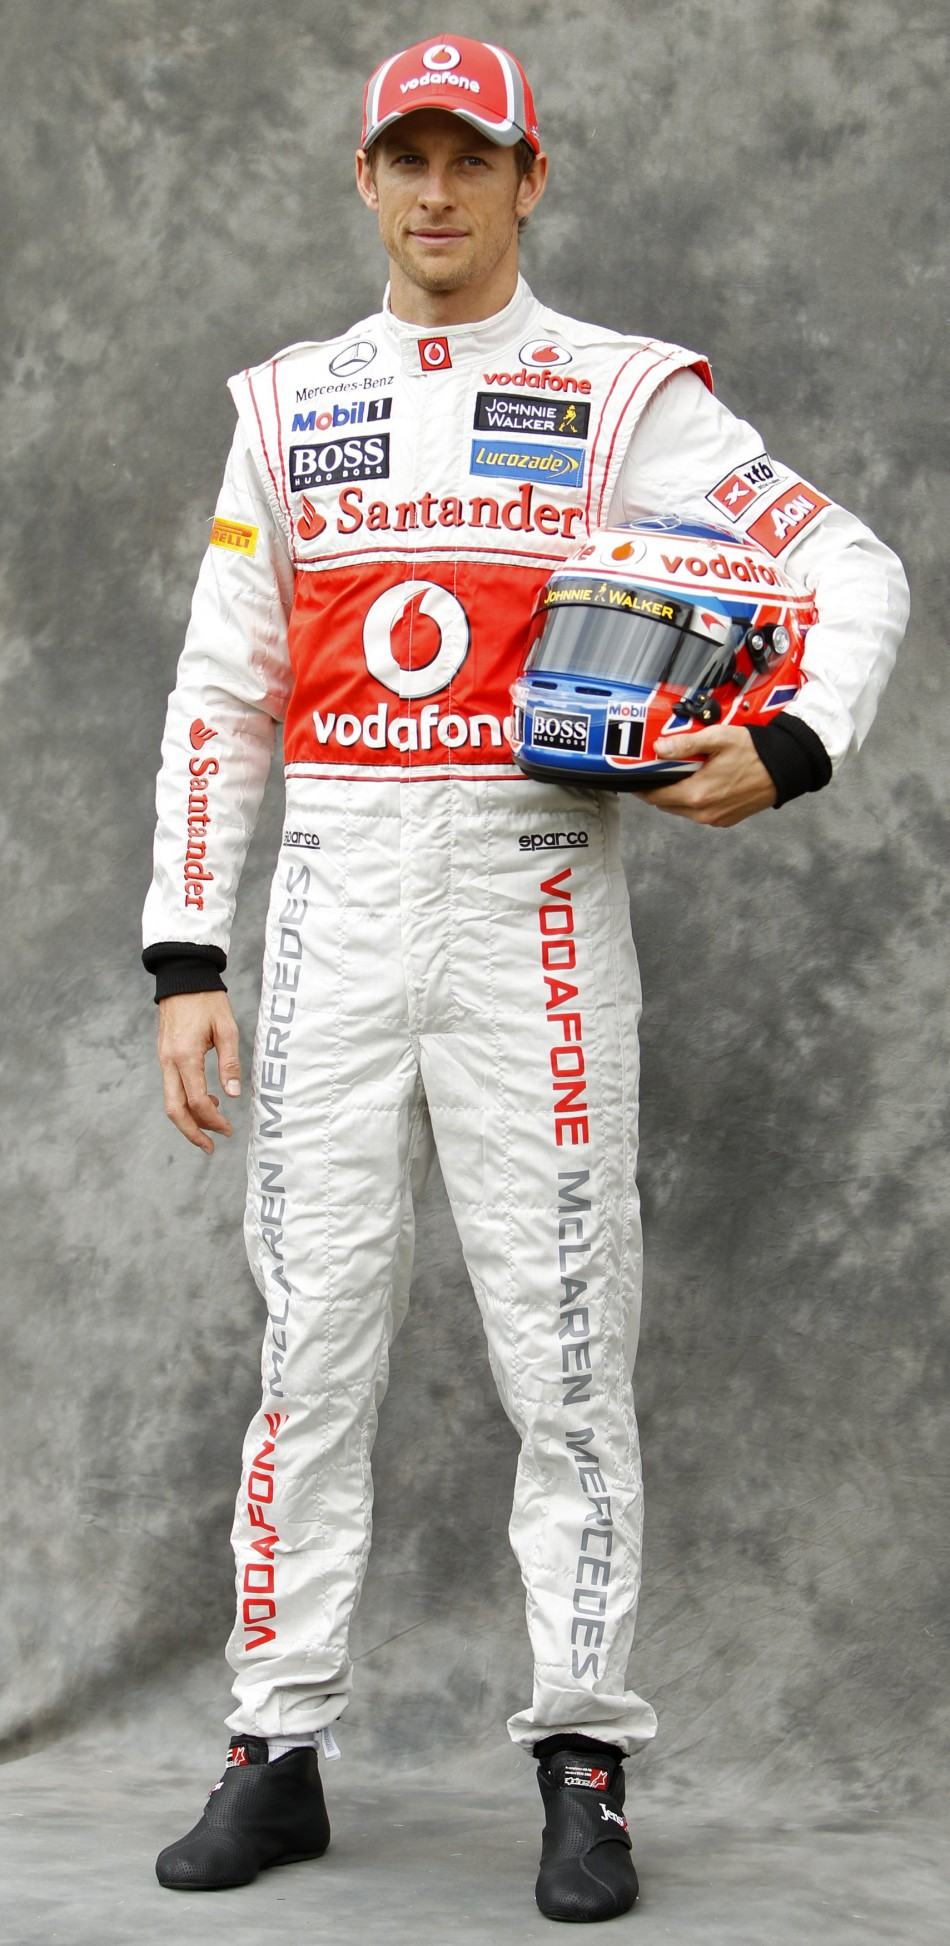 McLaren Formula One driver Button poses prior to the Australian F1 Grand Prix at the Albert Park circuit in Melbourne